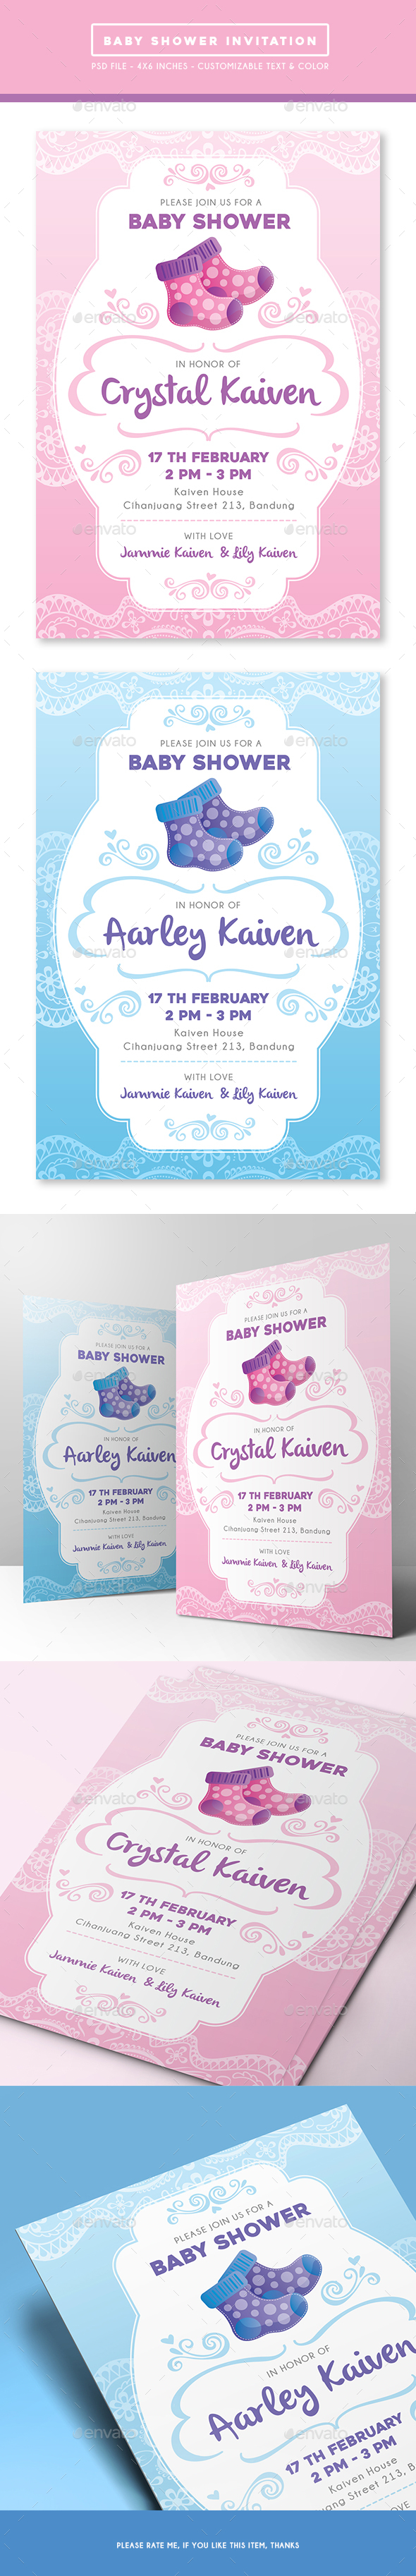 Baby Shower Invitation - Invitations Cards & Invites